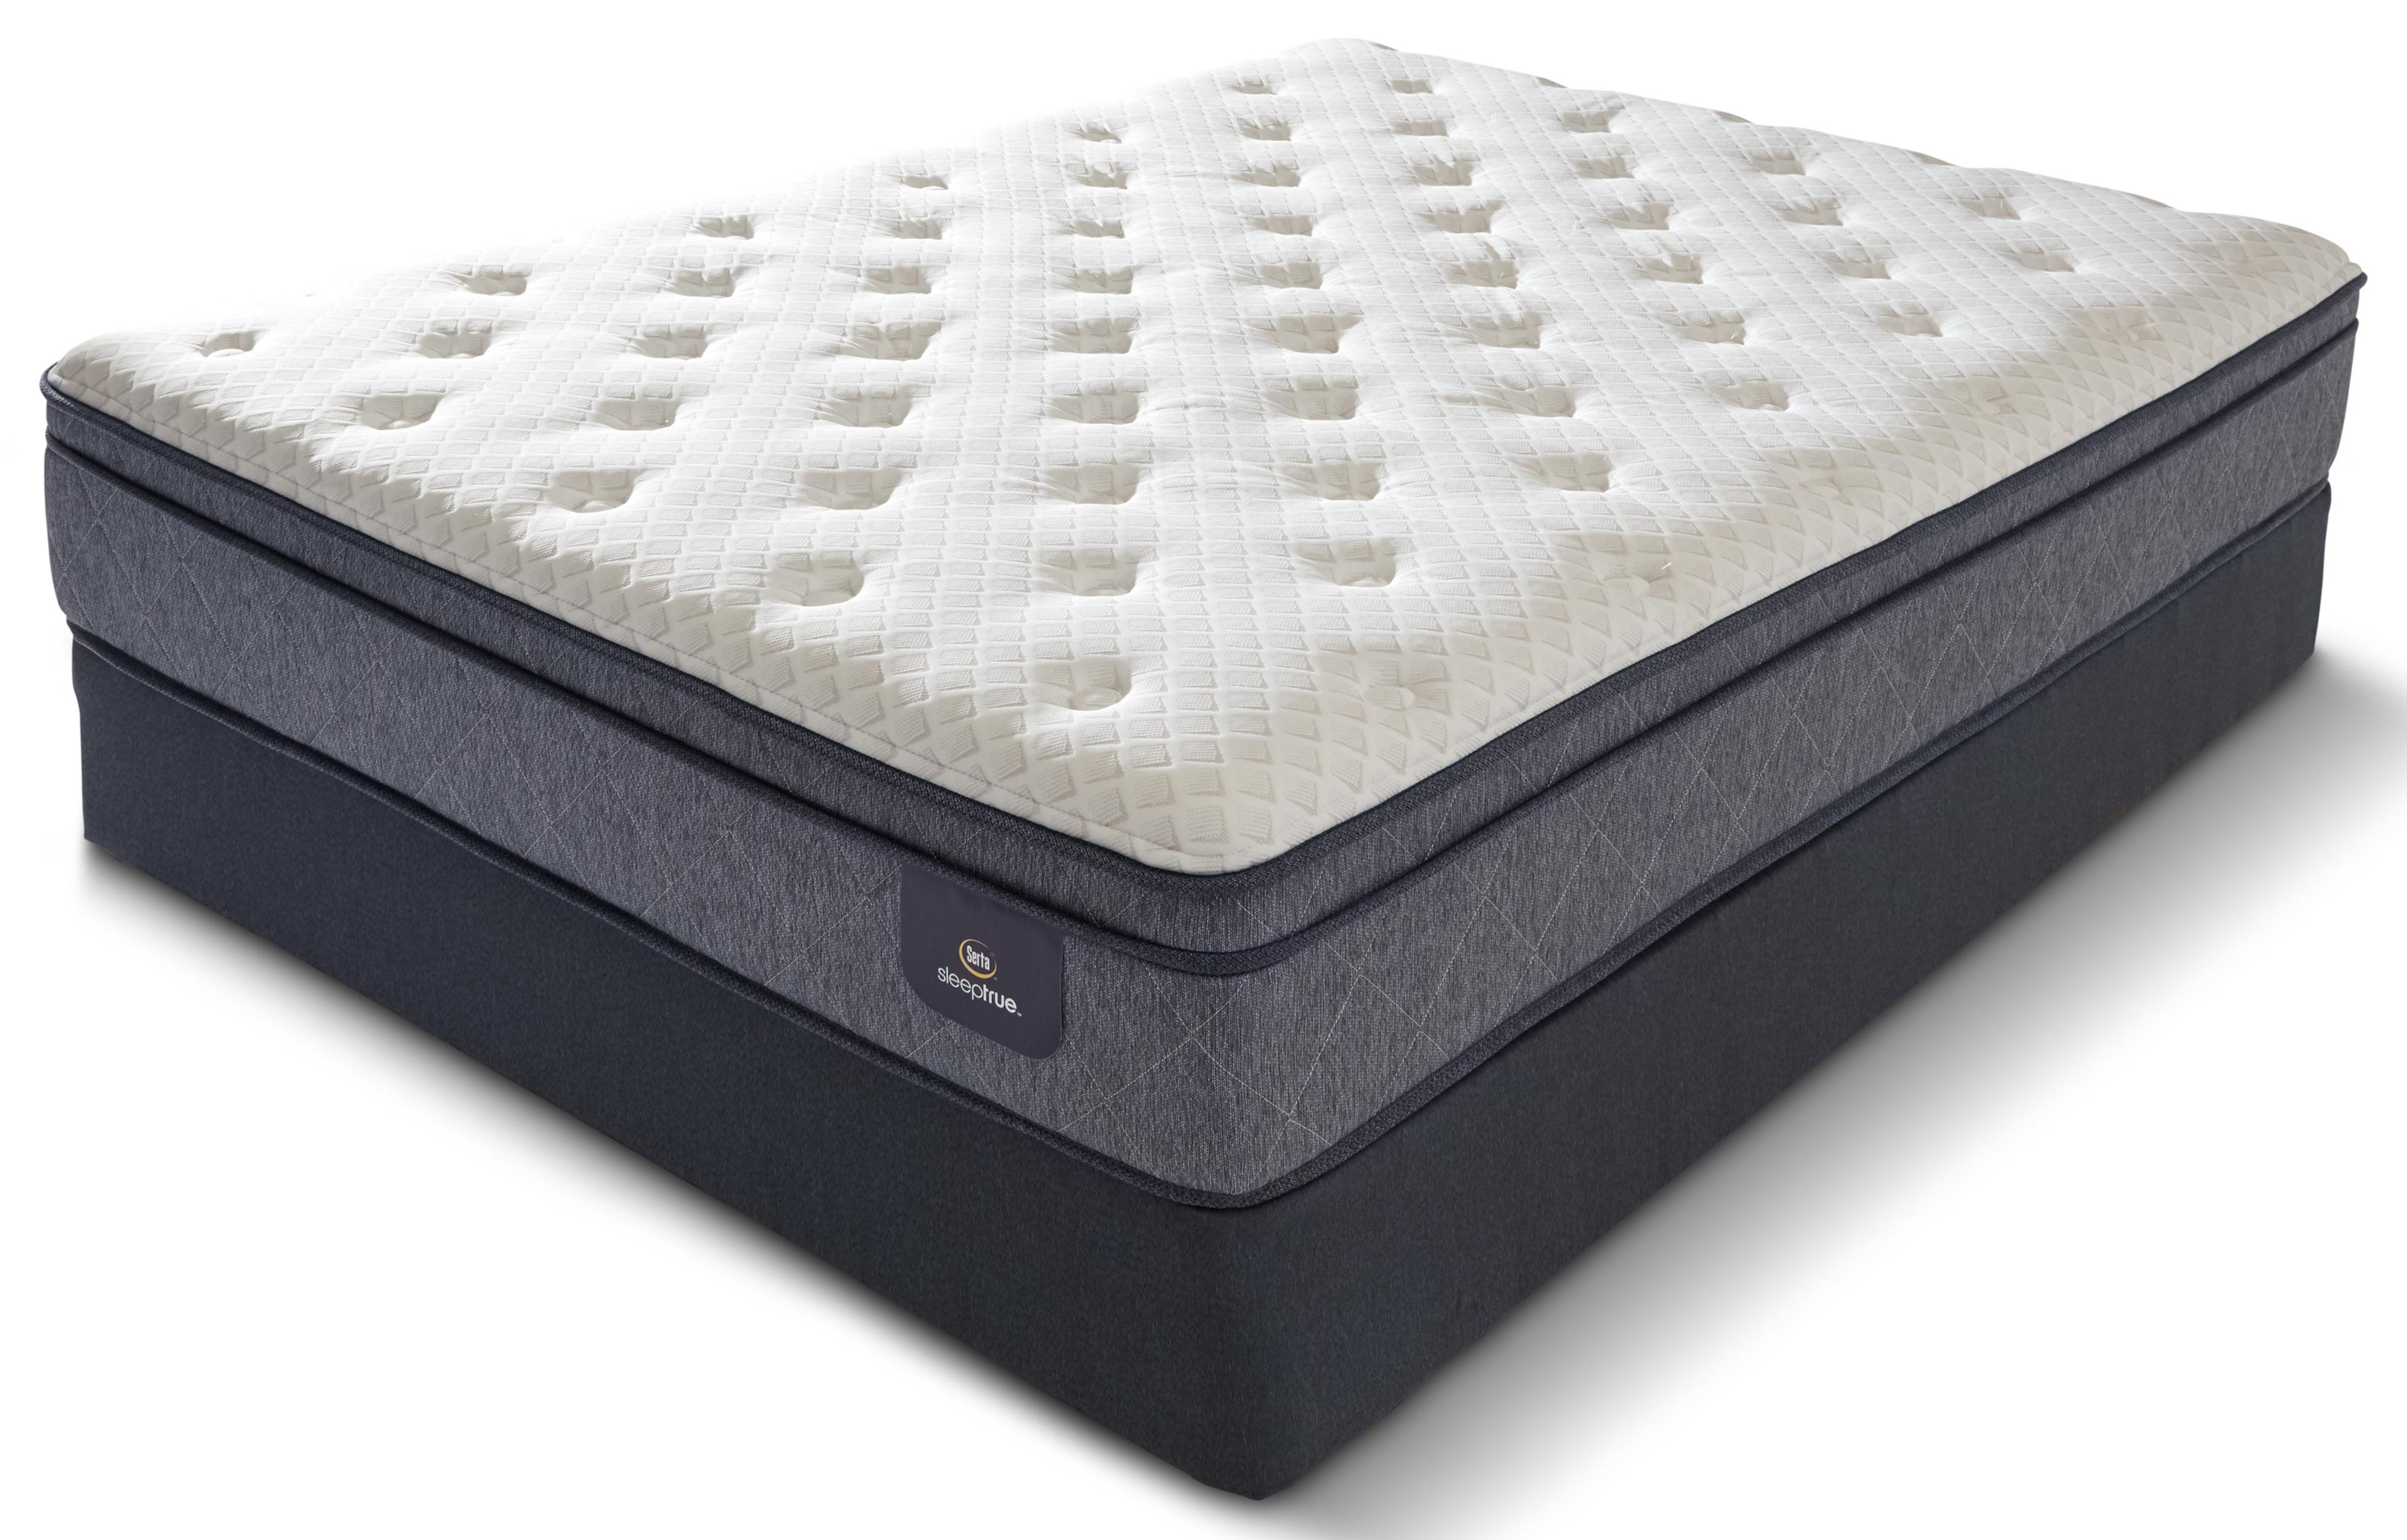 SPRUCE QN SPRUCE PLW SOFT MATTRESS by Serta Canada at Stoney Creek Furniture